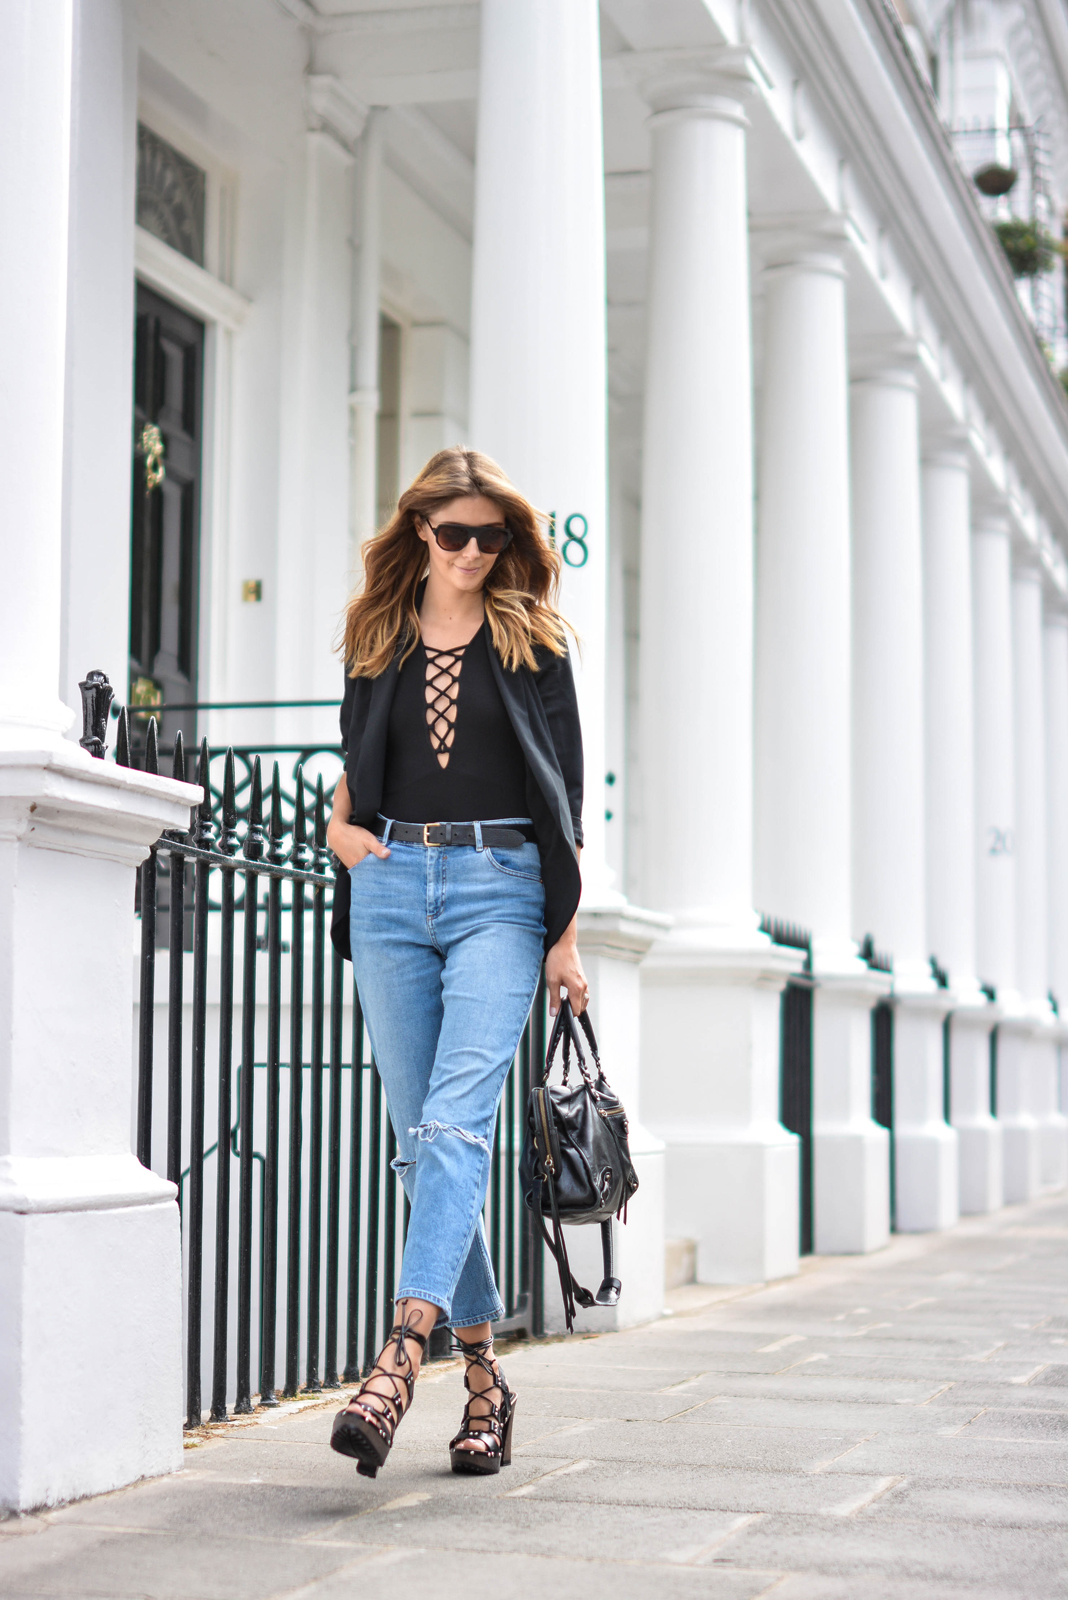 EJSTYLE wears Lace up black top, Black blazer, girlfreind jeans, black belt, Flat top square sunglasses, Balenciaga city bag black, asos turn back time wooden platform lace up sandals heels